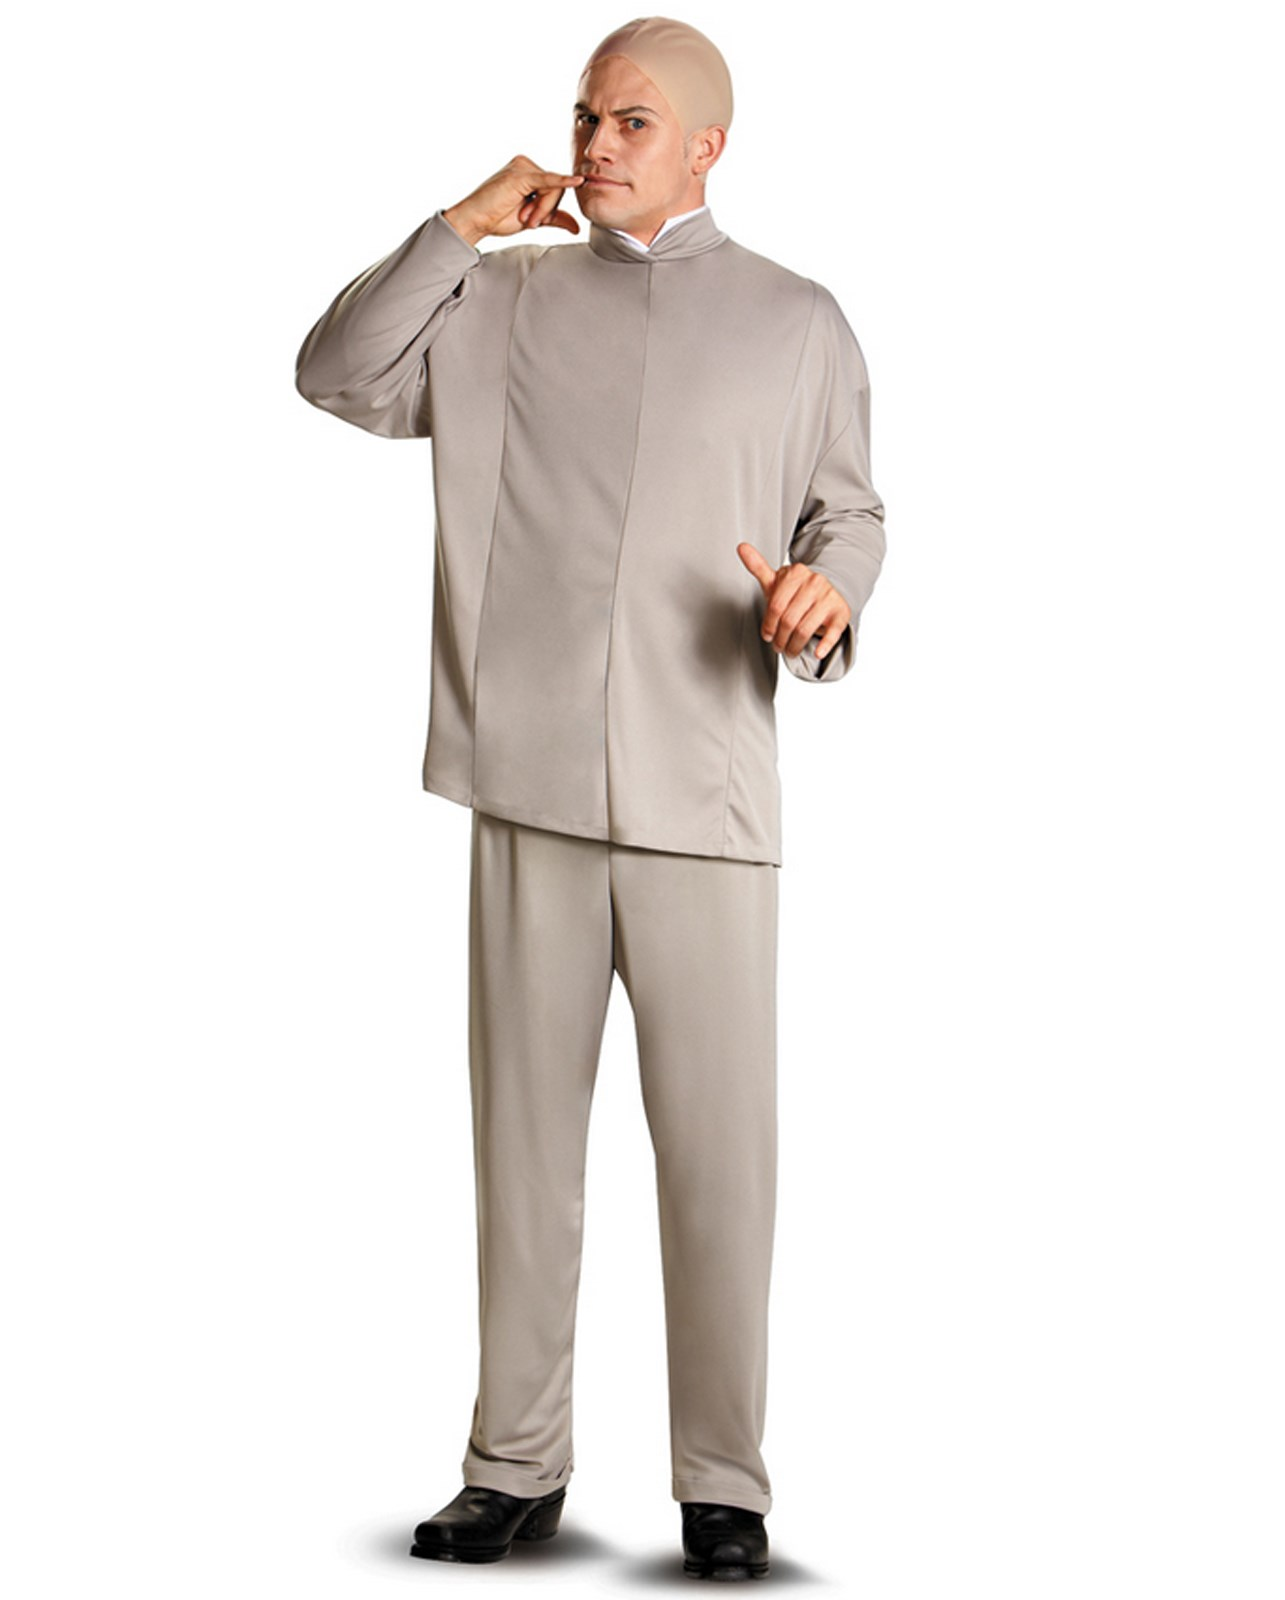 Austin Powers Dr. Evil Deluxe Adult Costume | BuyCostumes.com